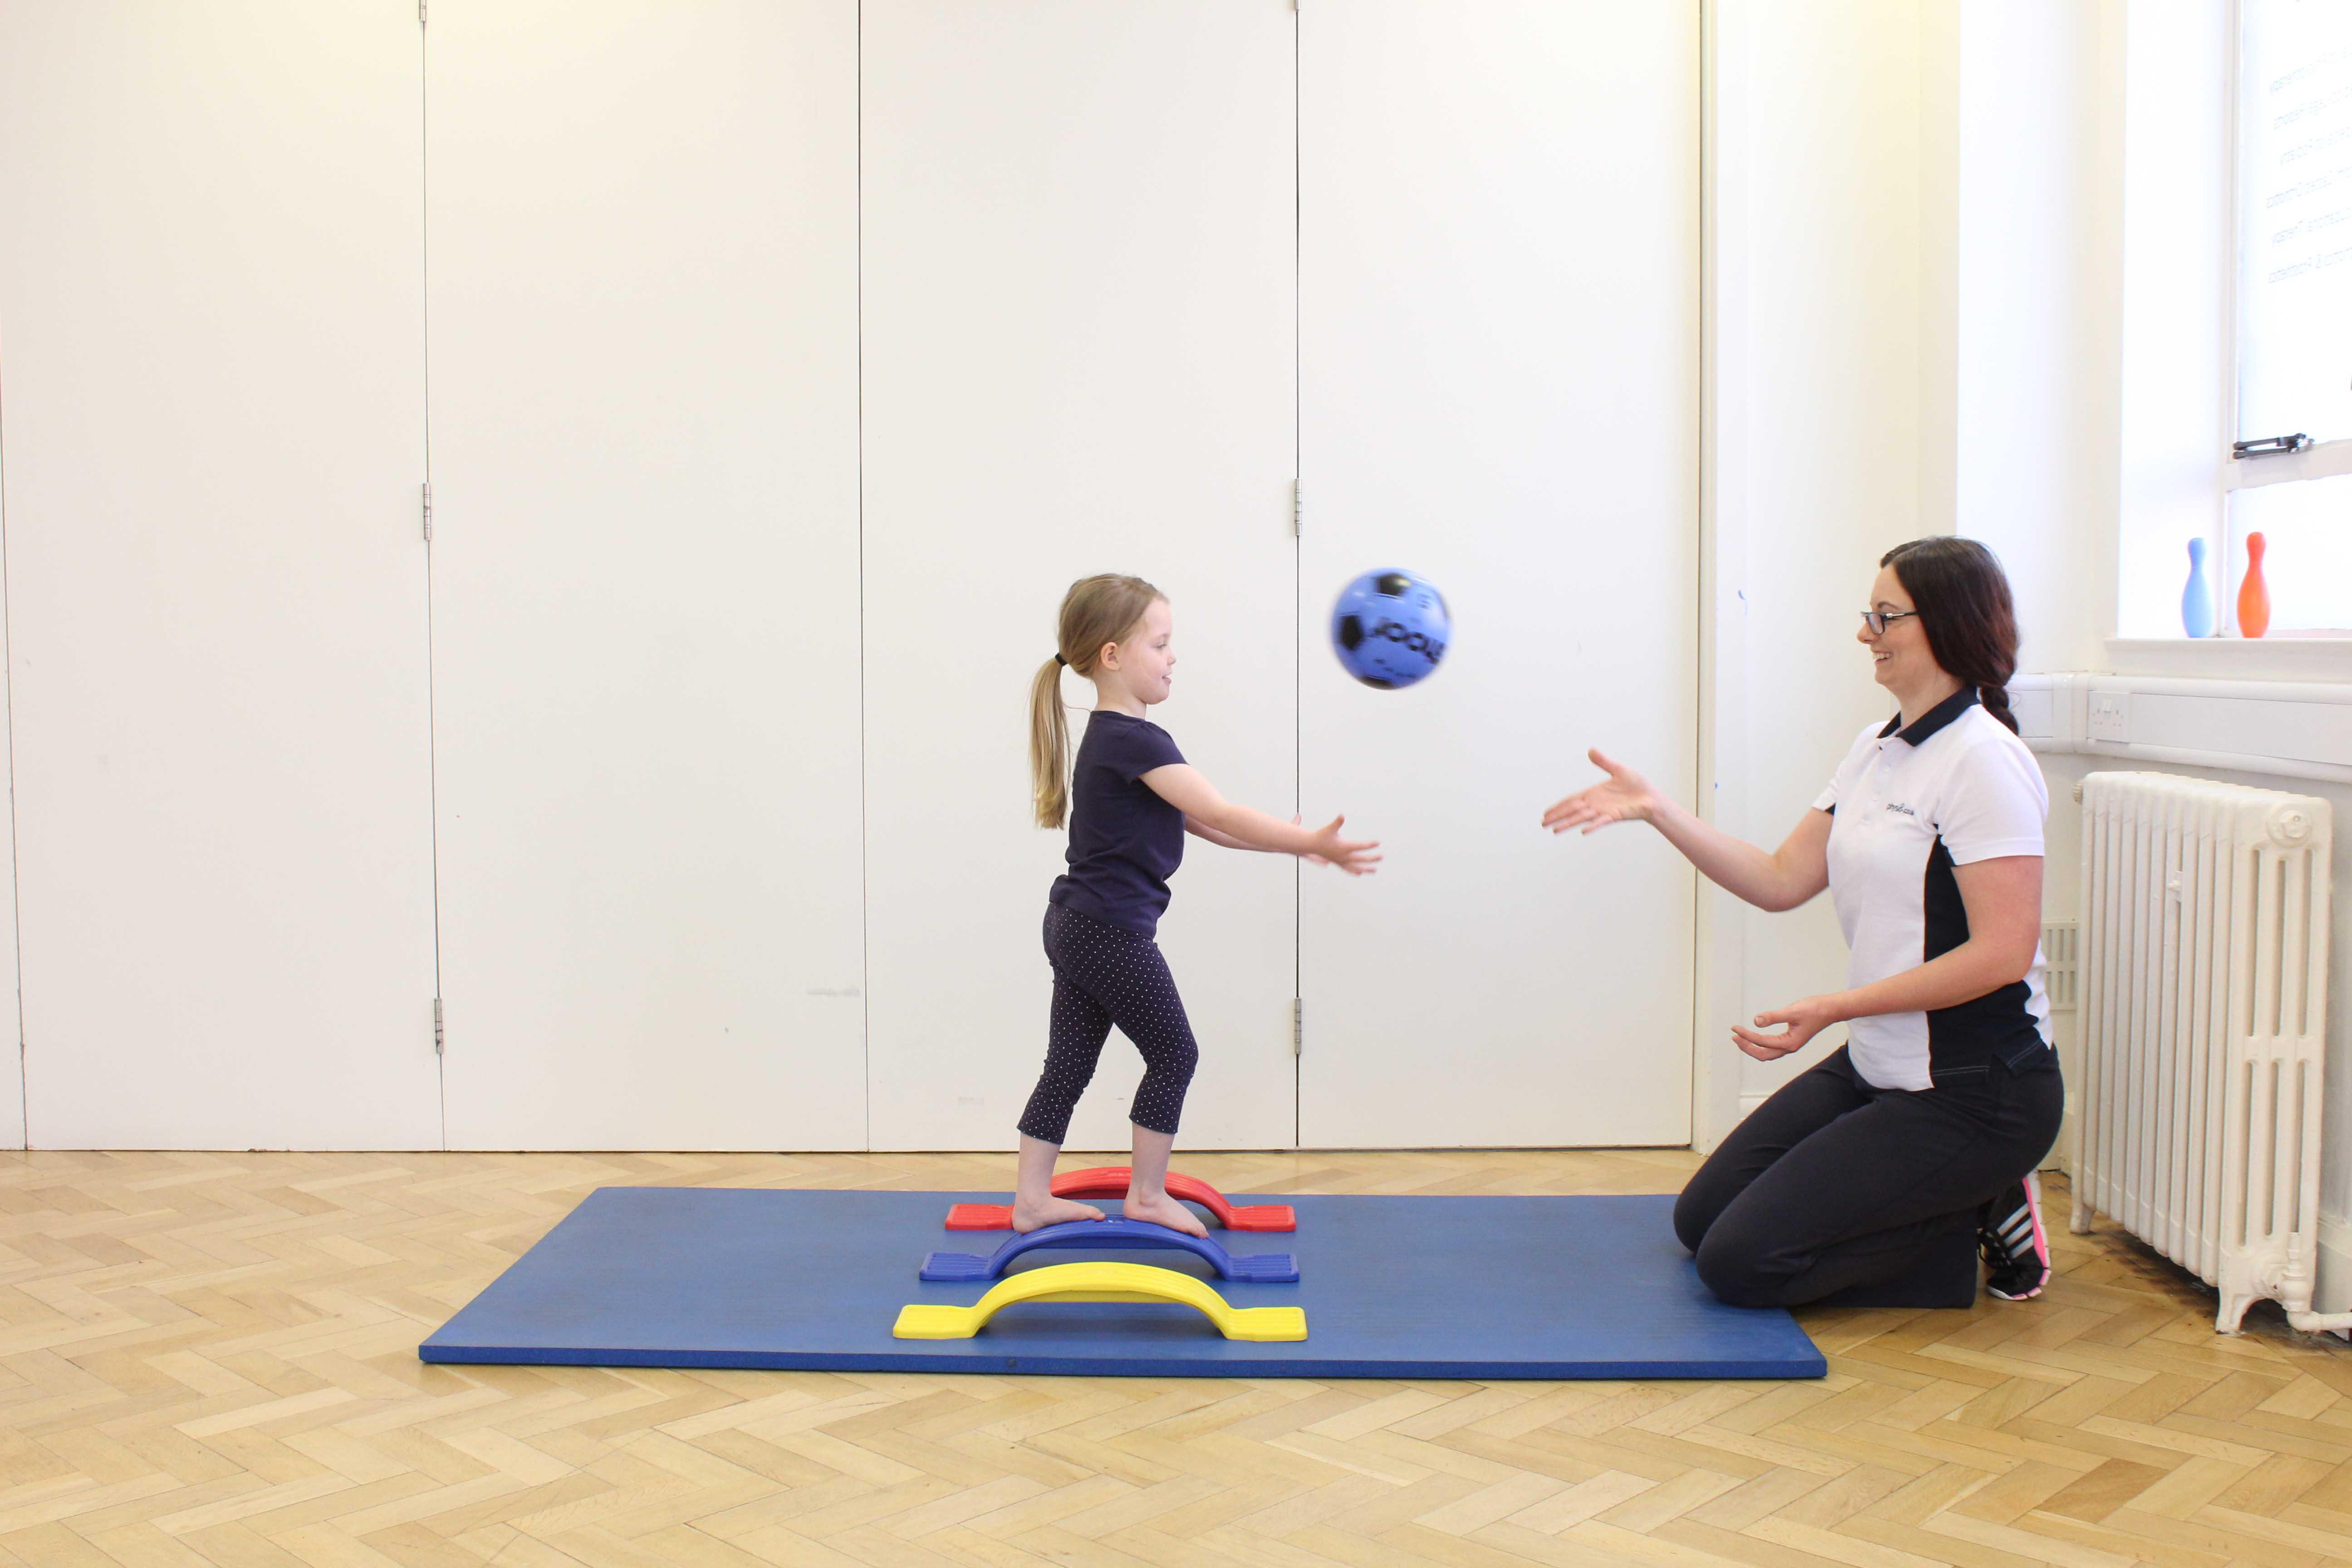 Balance and co-ordination rehabilitation exercises assisted by a paediatric physiotherapist